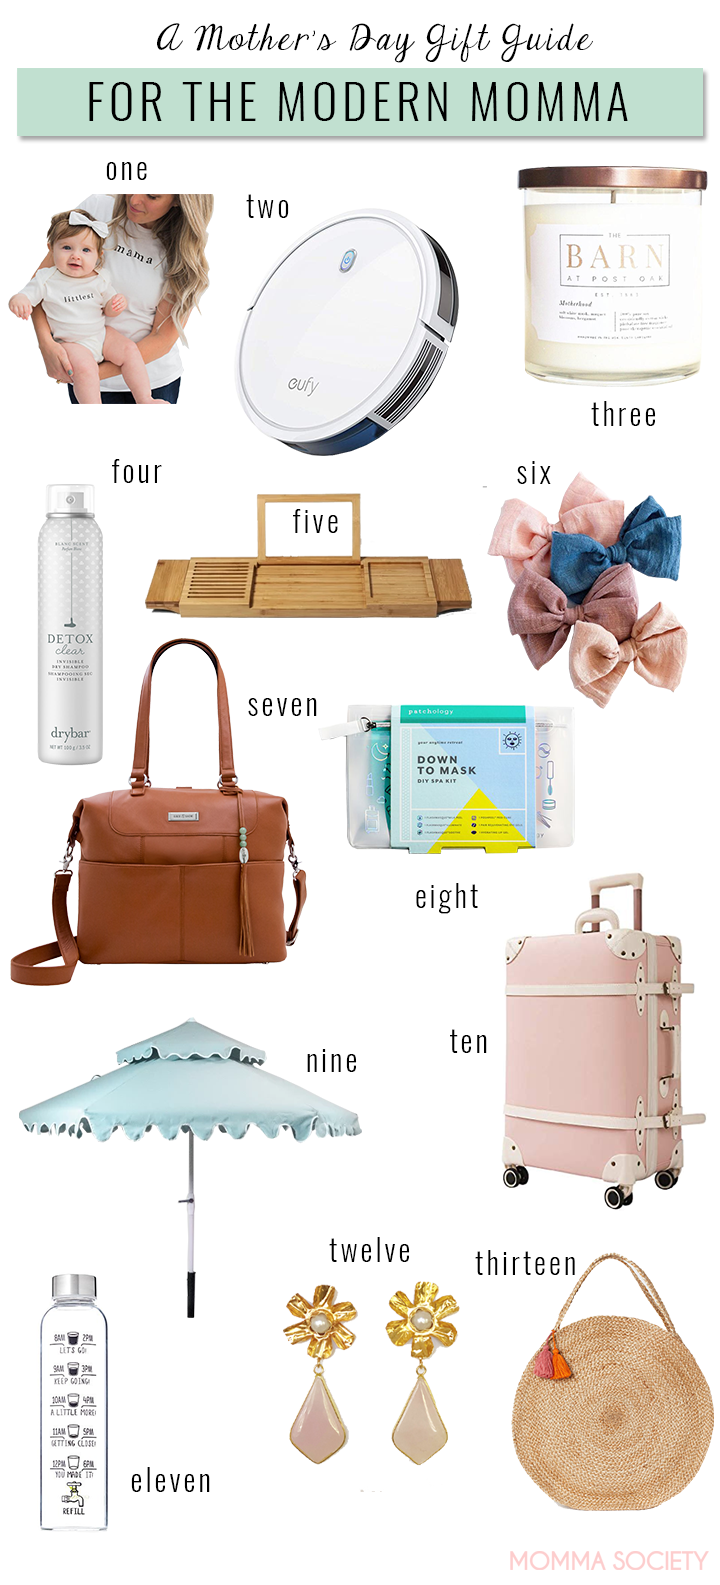 A Mother's Day Gift Guide for the Modern Mom | Momma Society